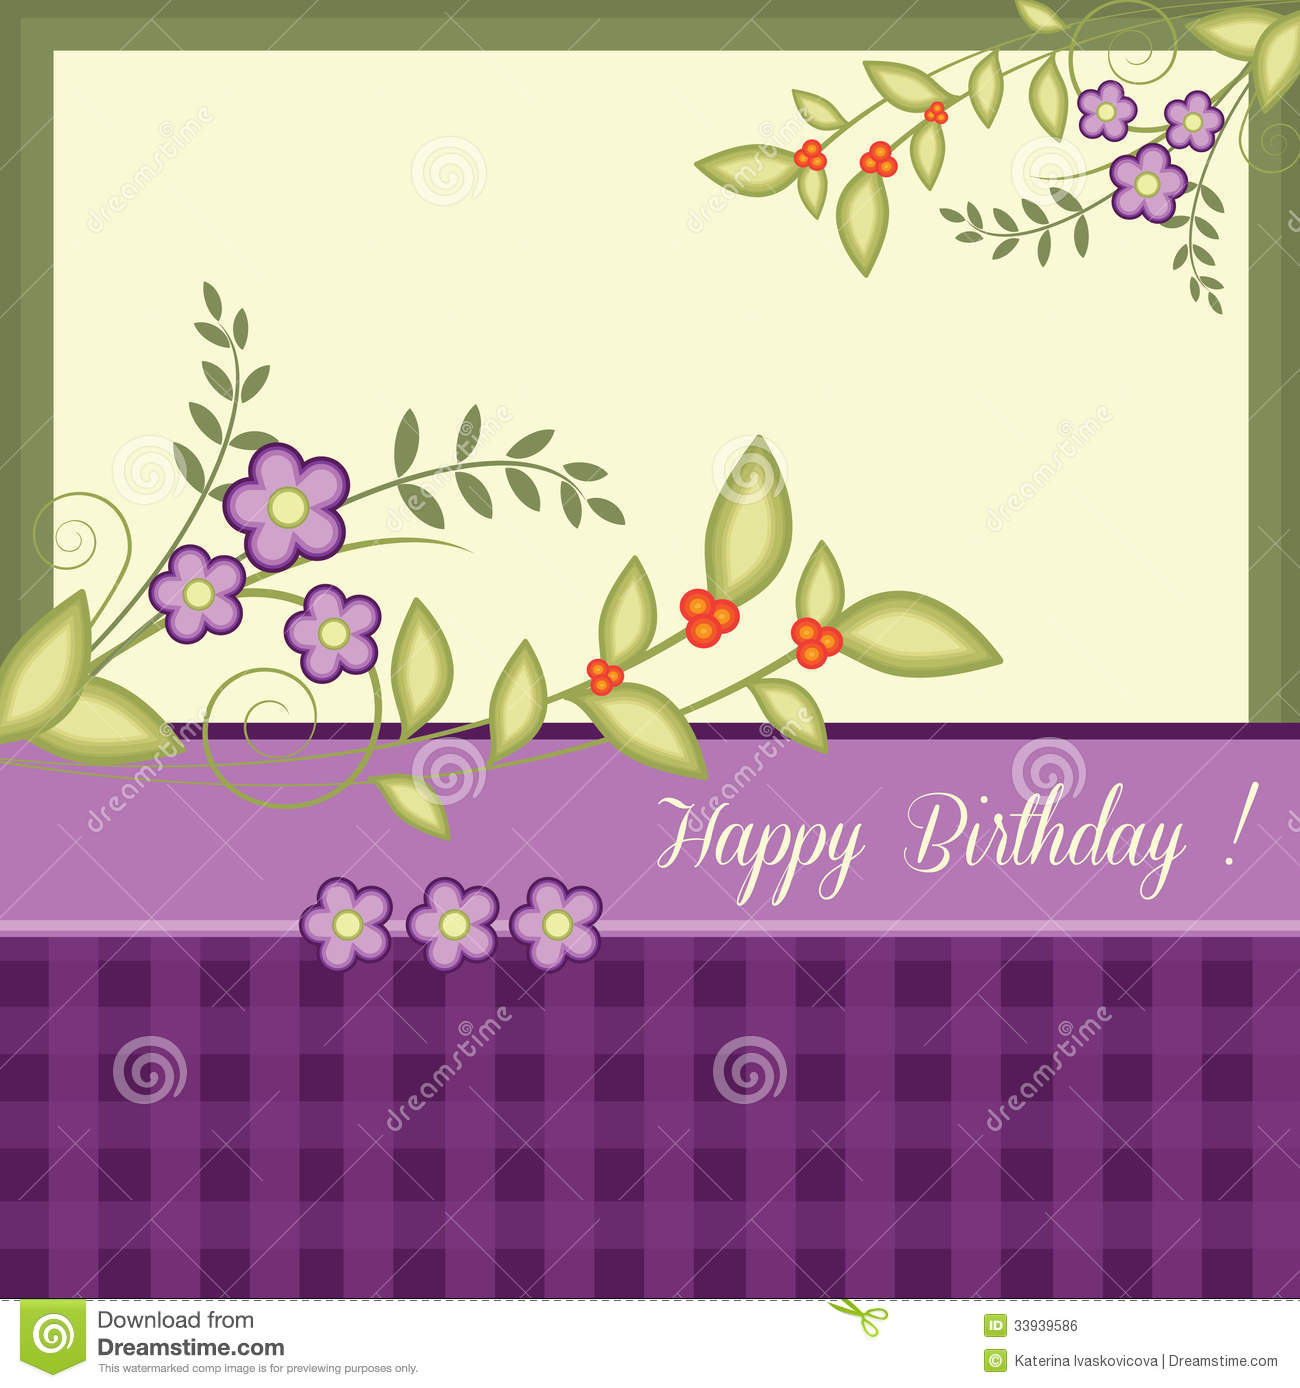 Birthday Card  Birthday Greetings Download Free